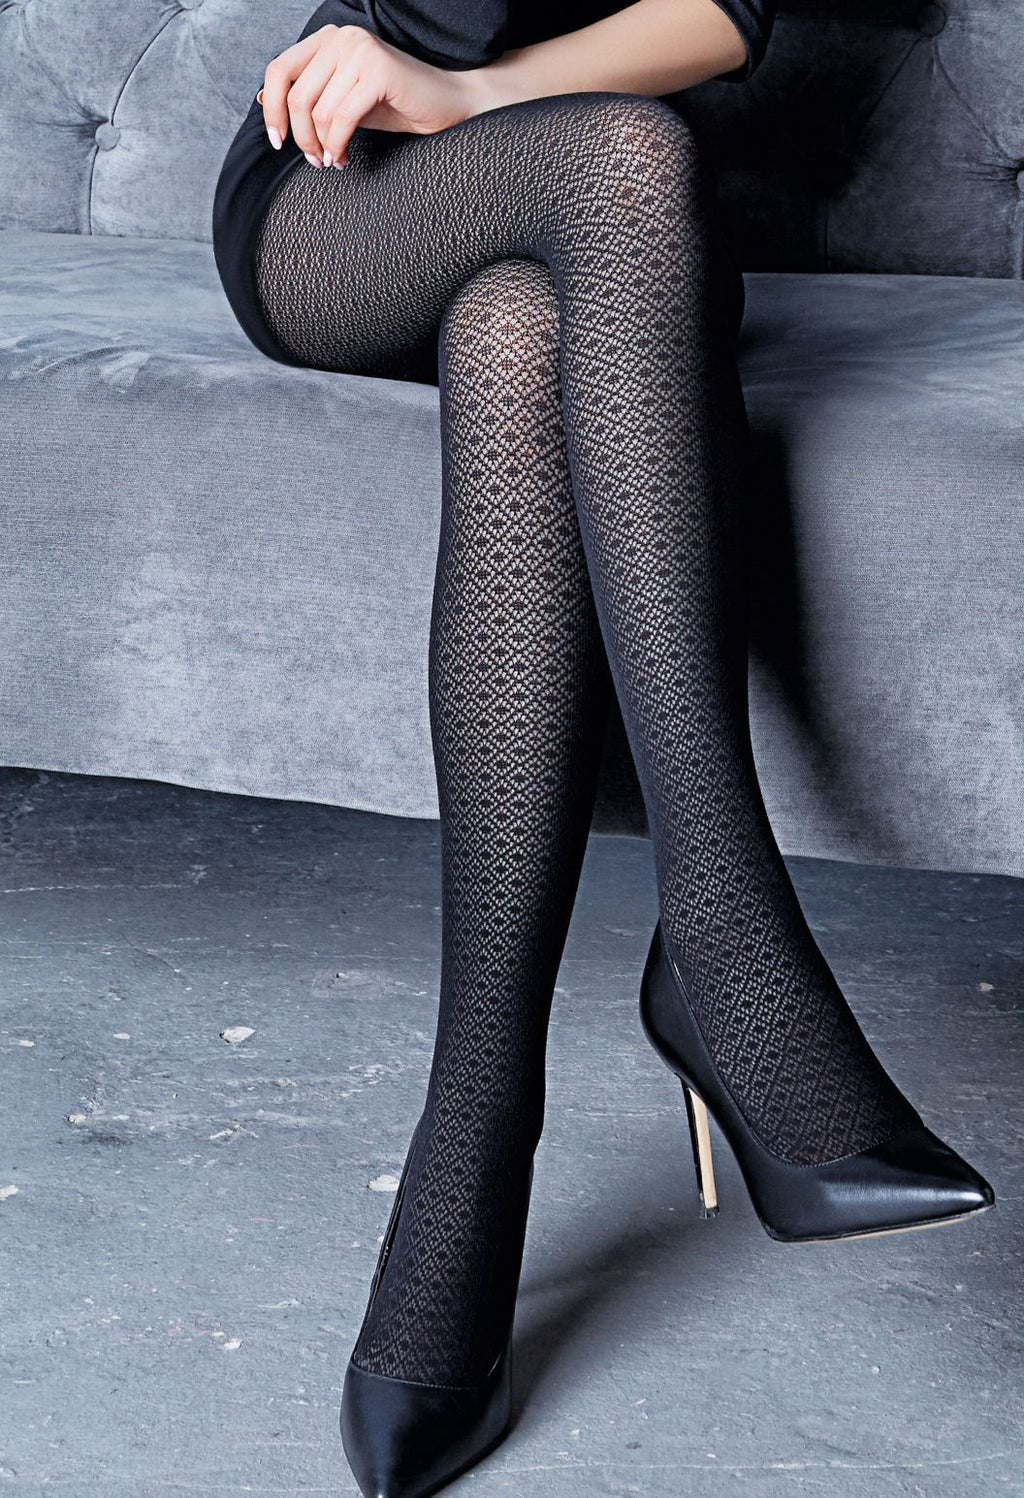 Black Floral Lace Micro Net Tulle Tights One Size fits UK 8-12